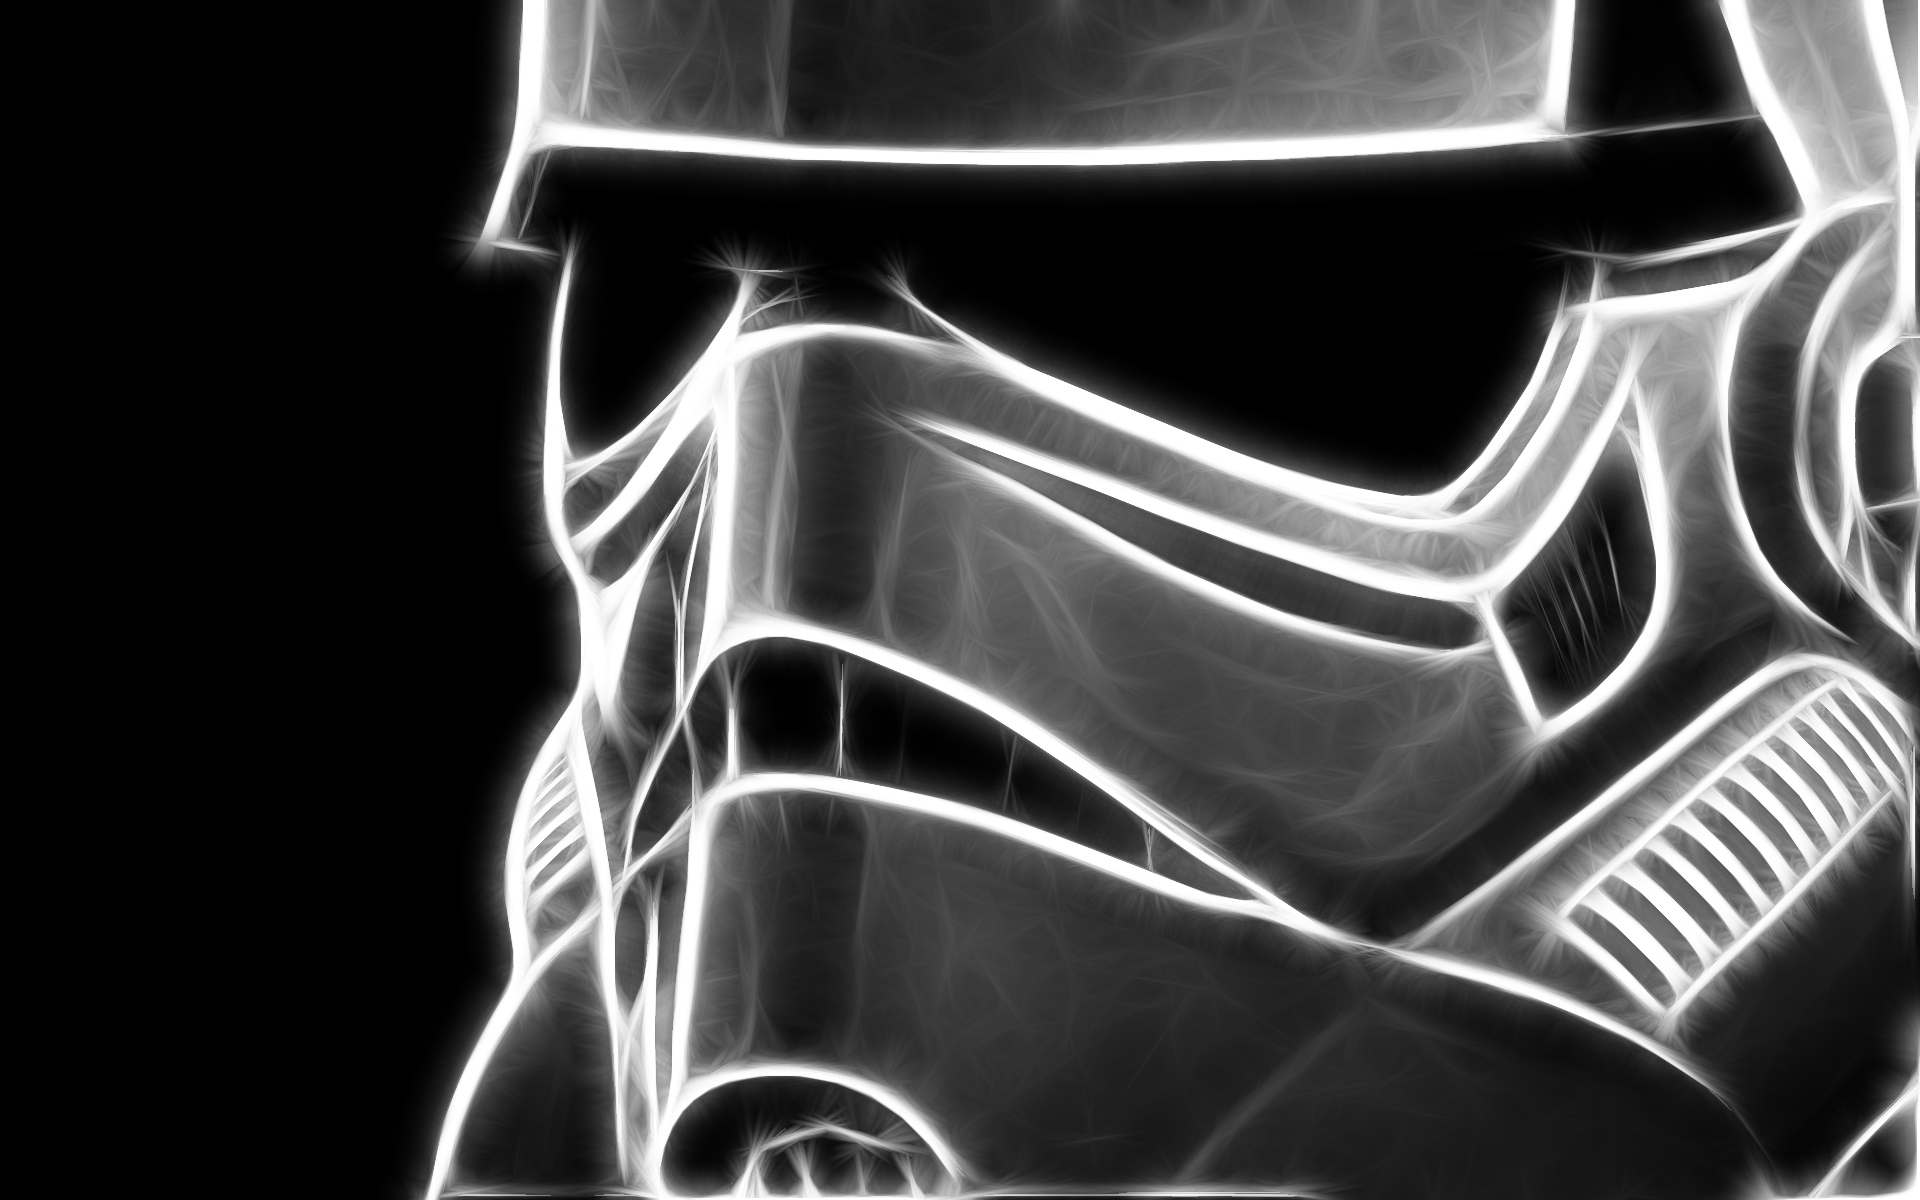 Free Download Star Wars Stormtroopers Mask Wallpapers Hd